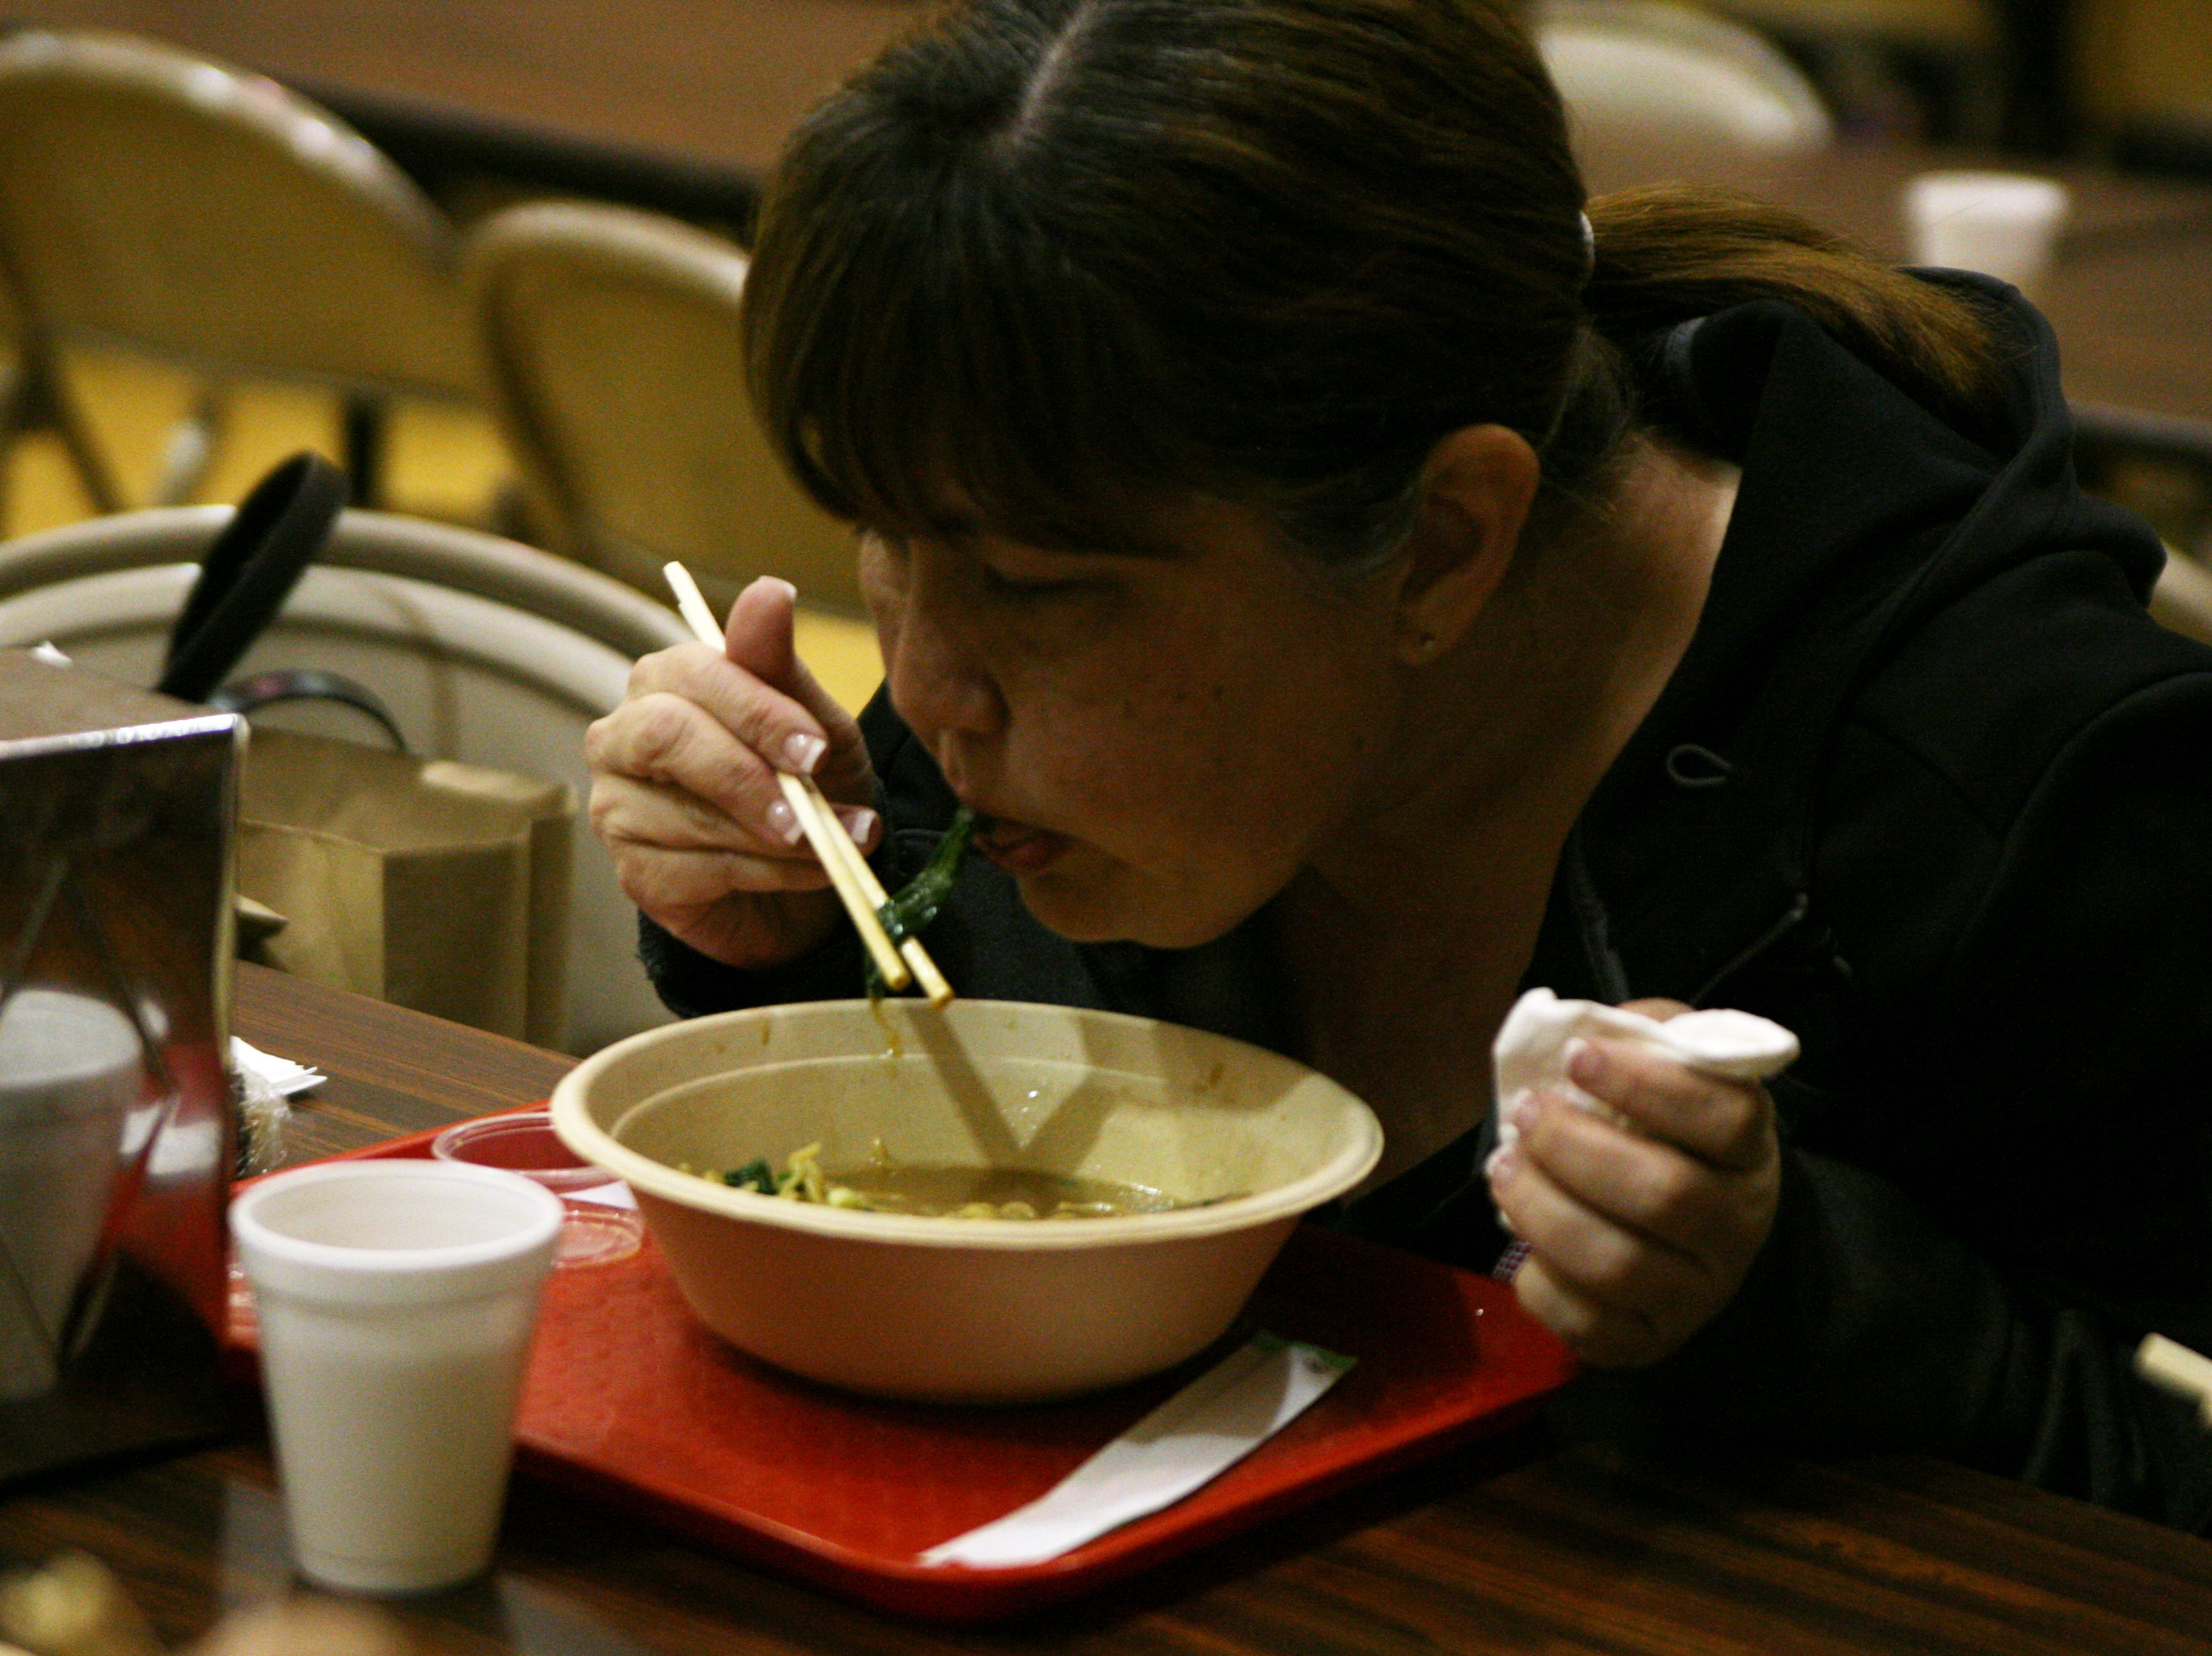 Connie Grantham chows down on some seaweed found in her ramen Saturday. April 27, 2019.